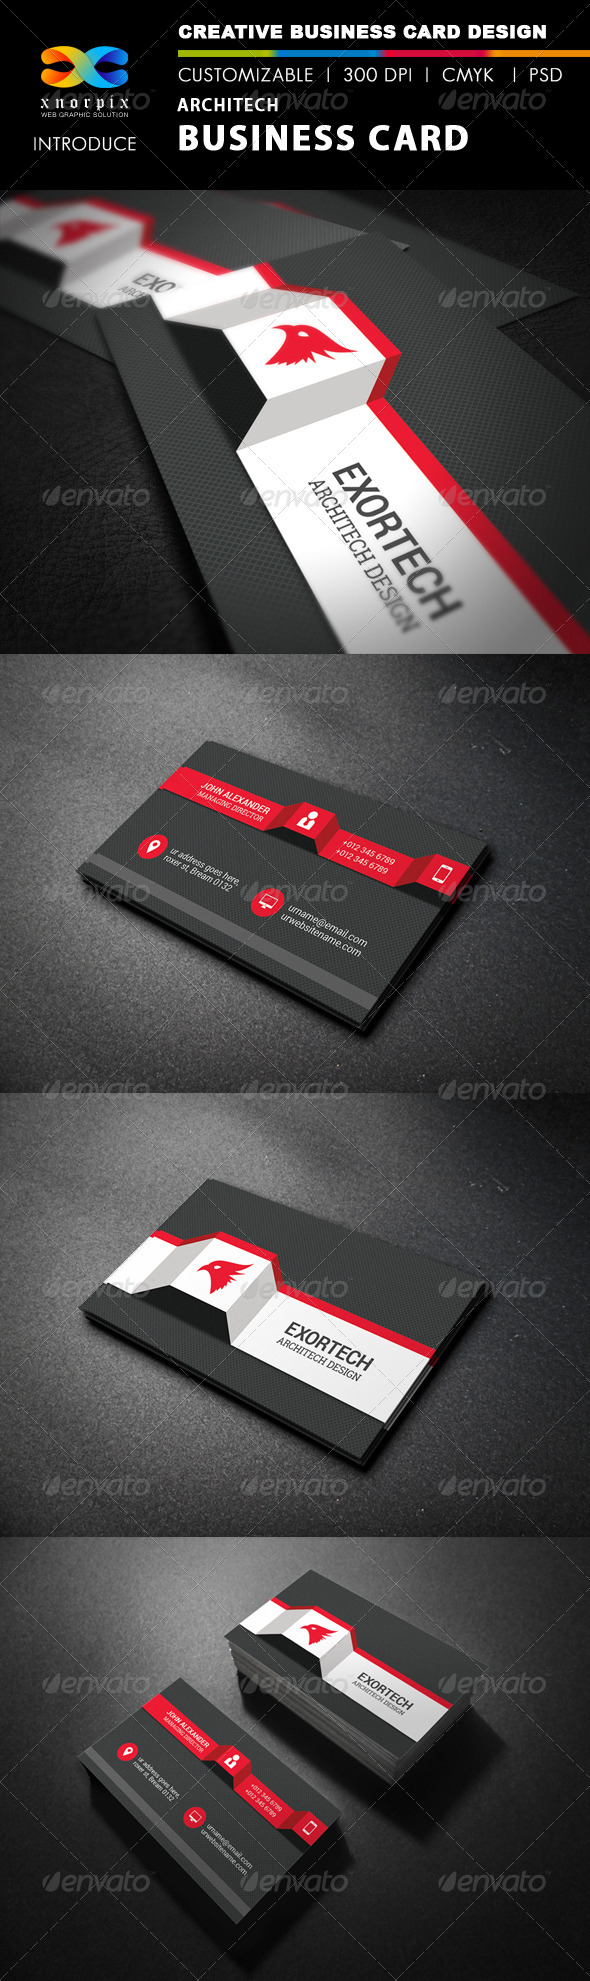 Architect Business Card By Axnorpix